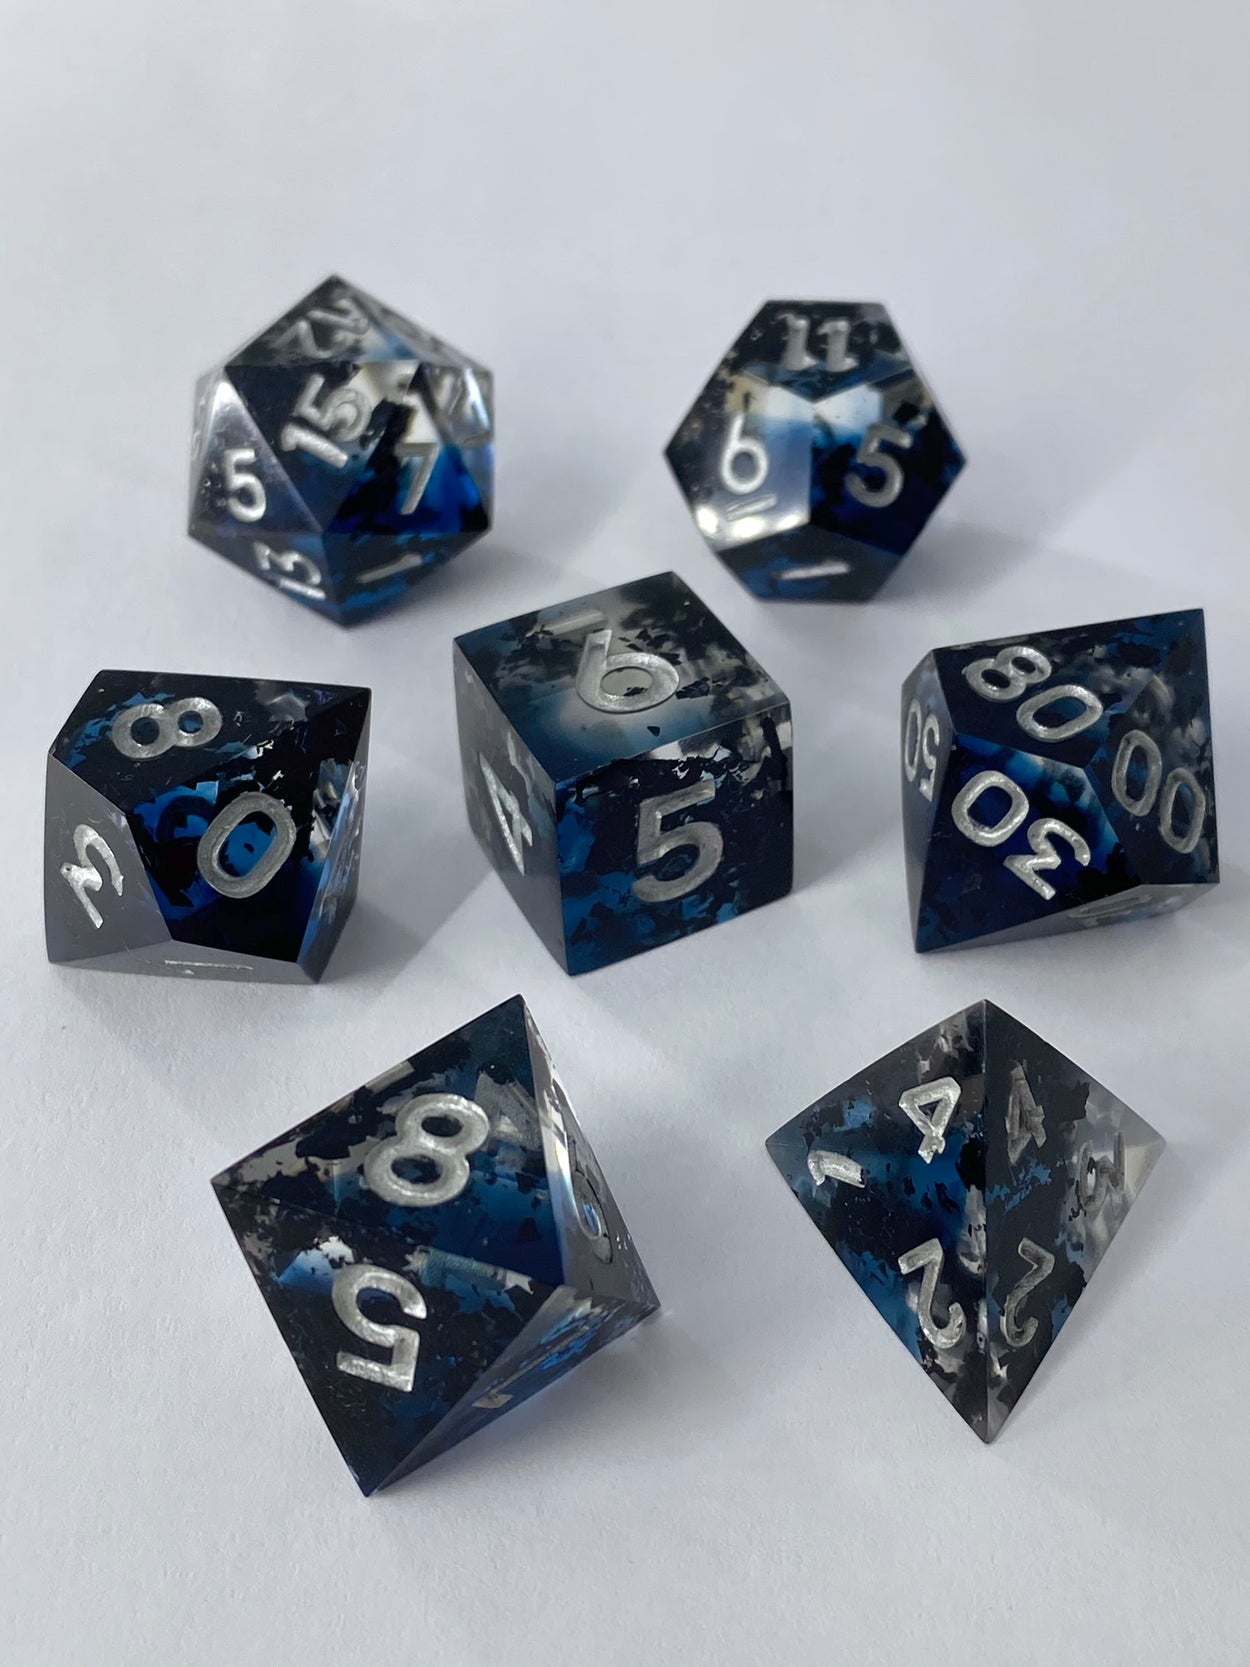 The Abyss 7-Piece Dice Set